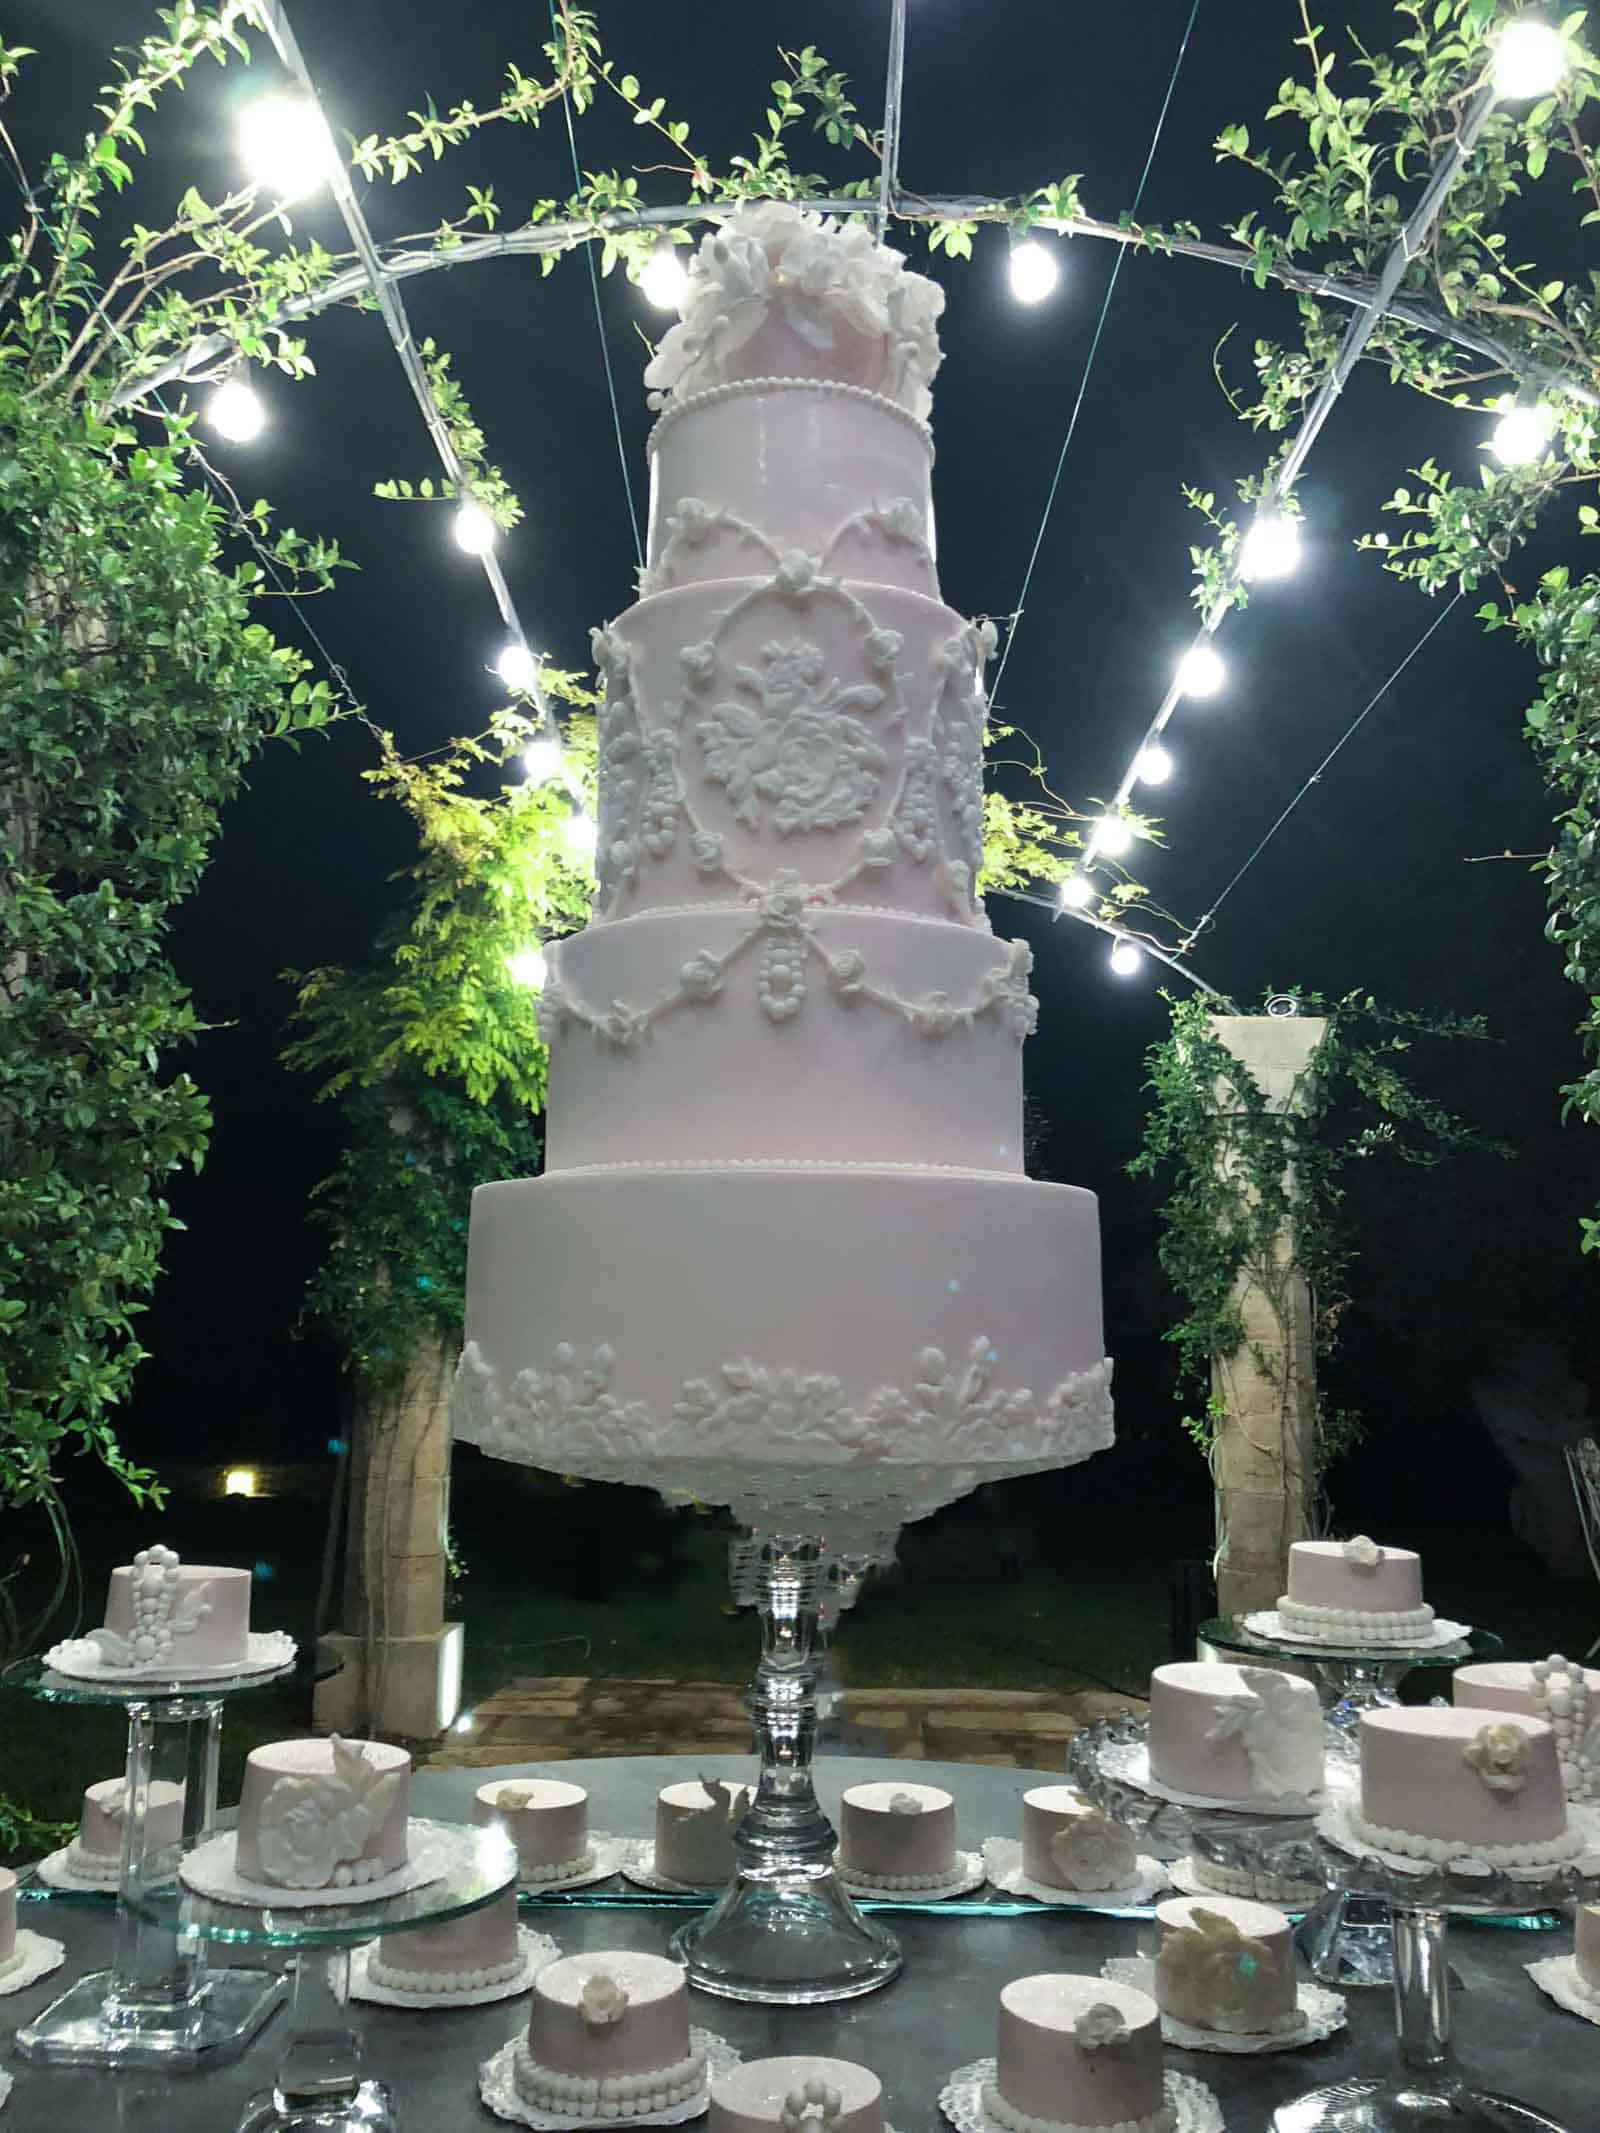 Wedding Cake created by Tuscan Wedding Cakes for the Italy Destination Wedding of David Hasselhoff & Haley Roberts